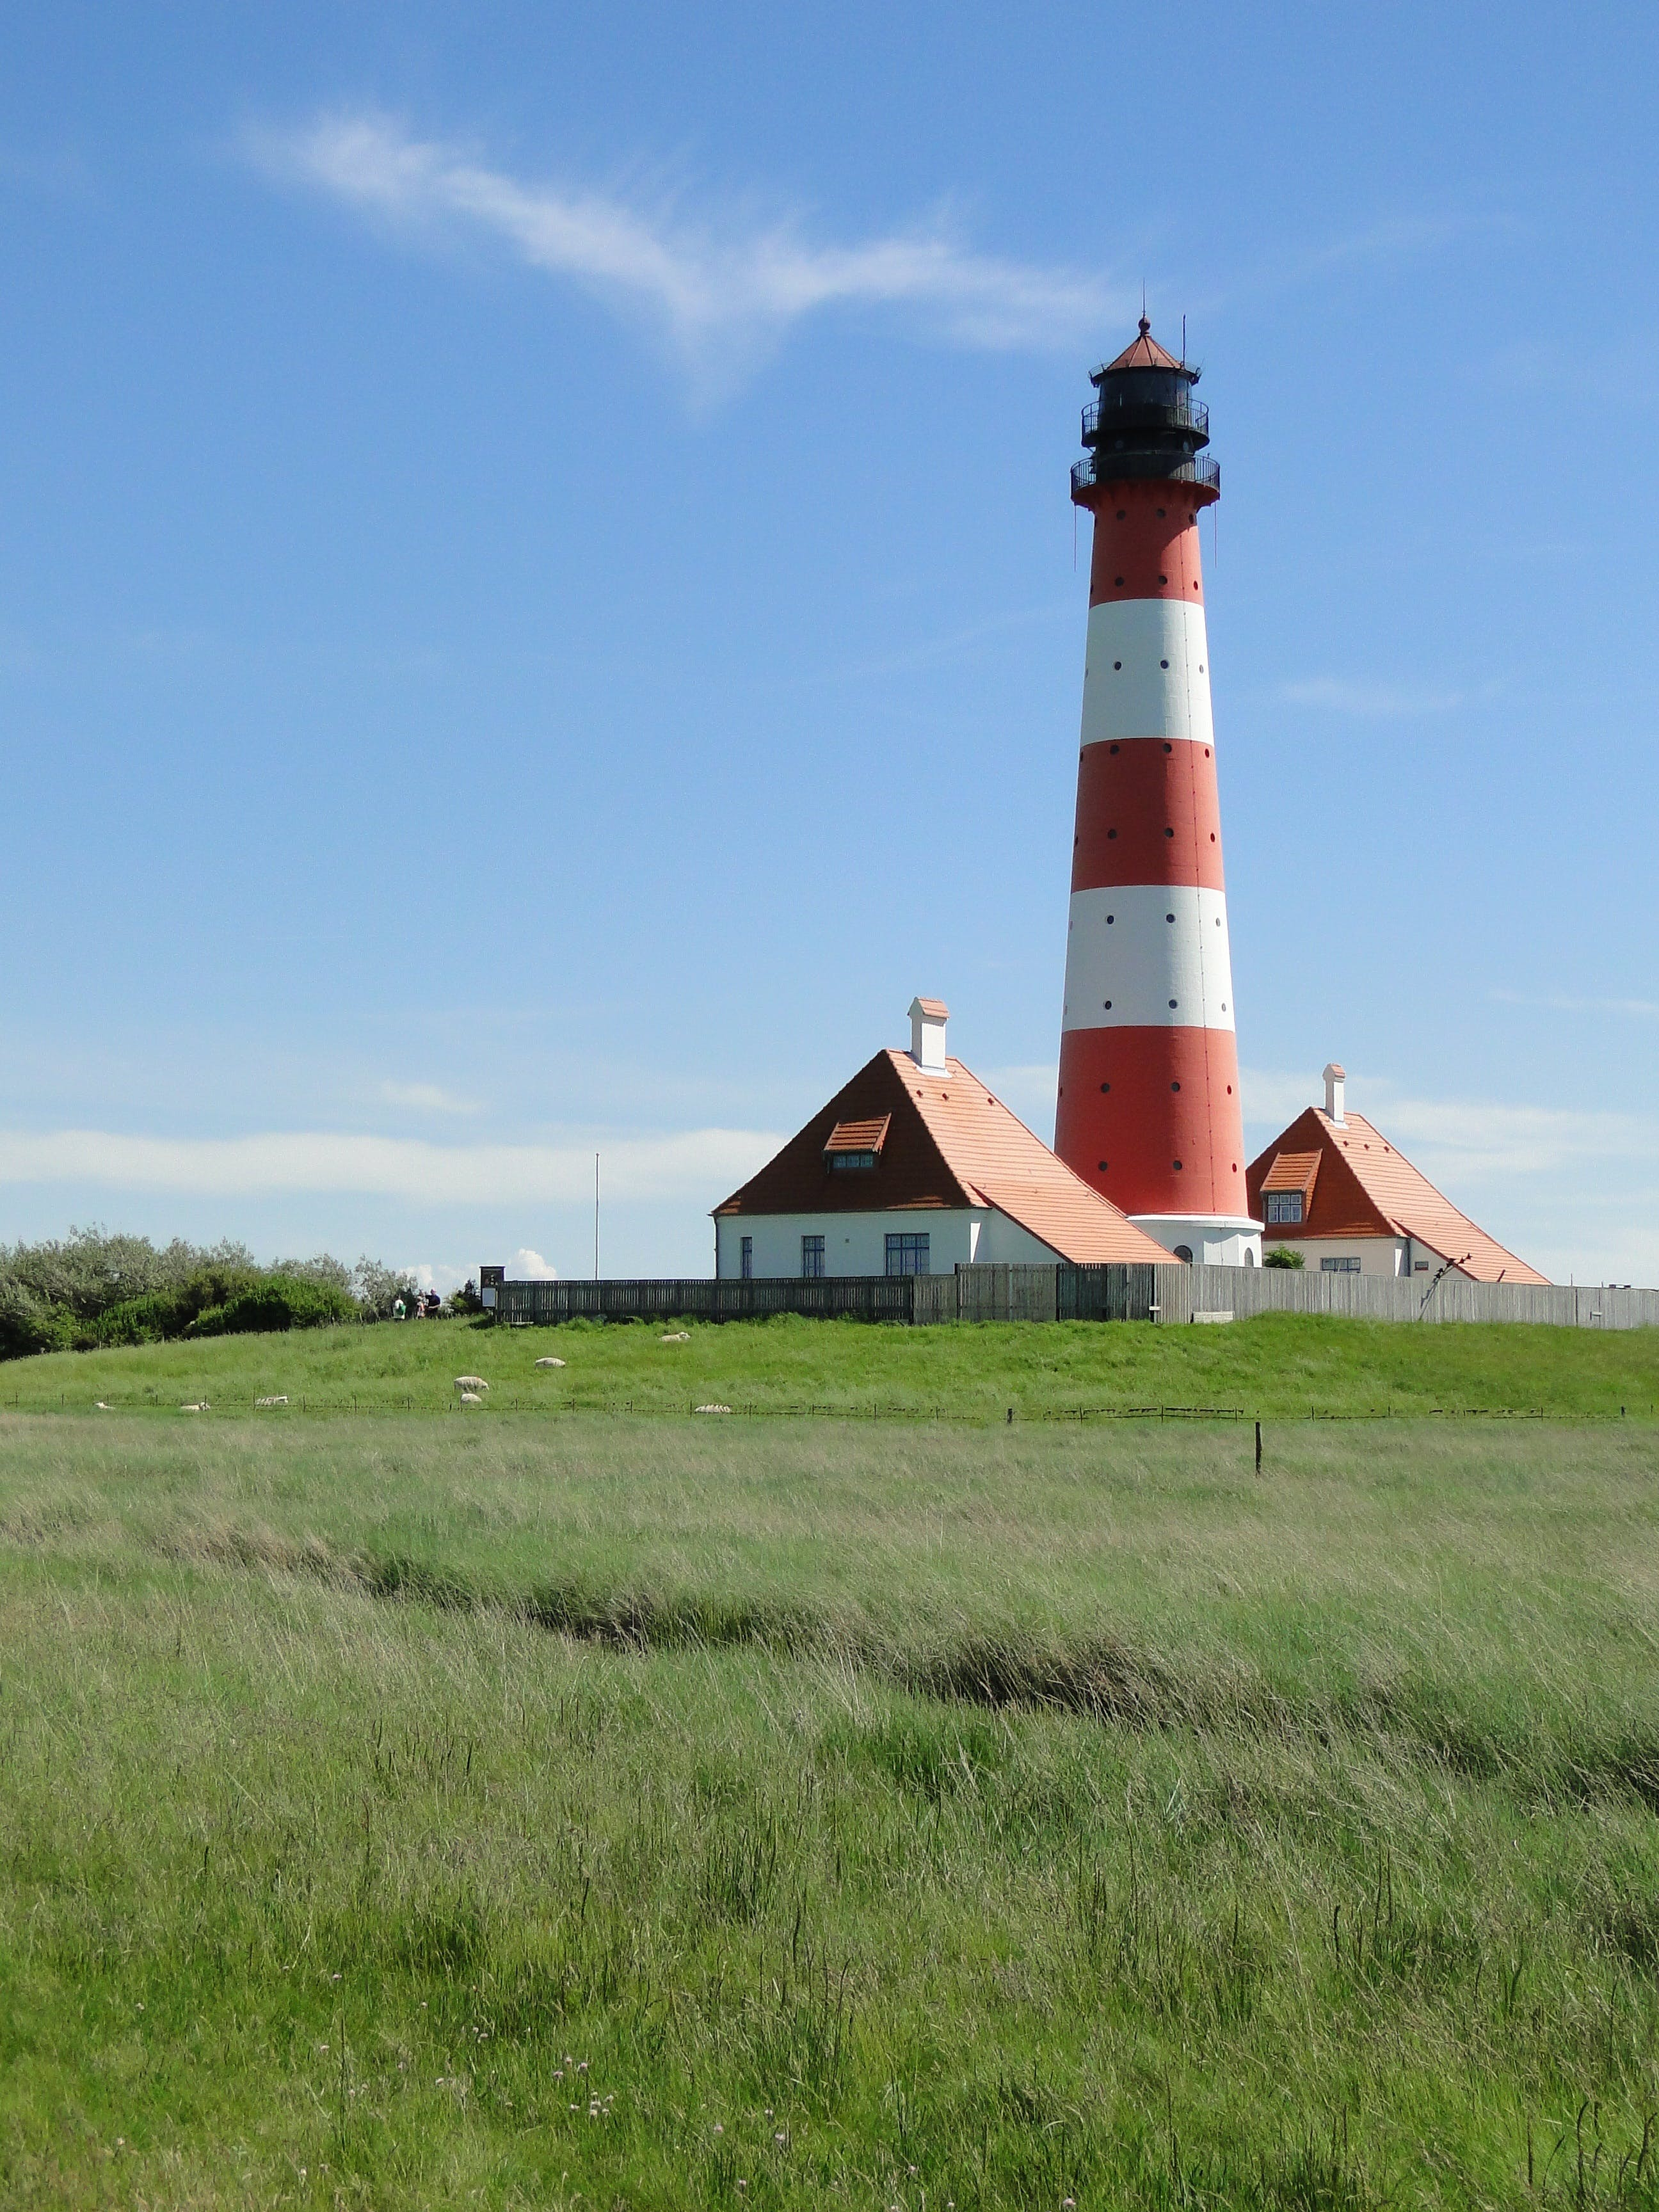 White and Red Lighthouse Near Grass